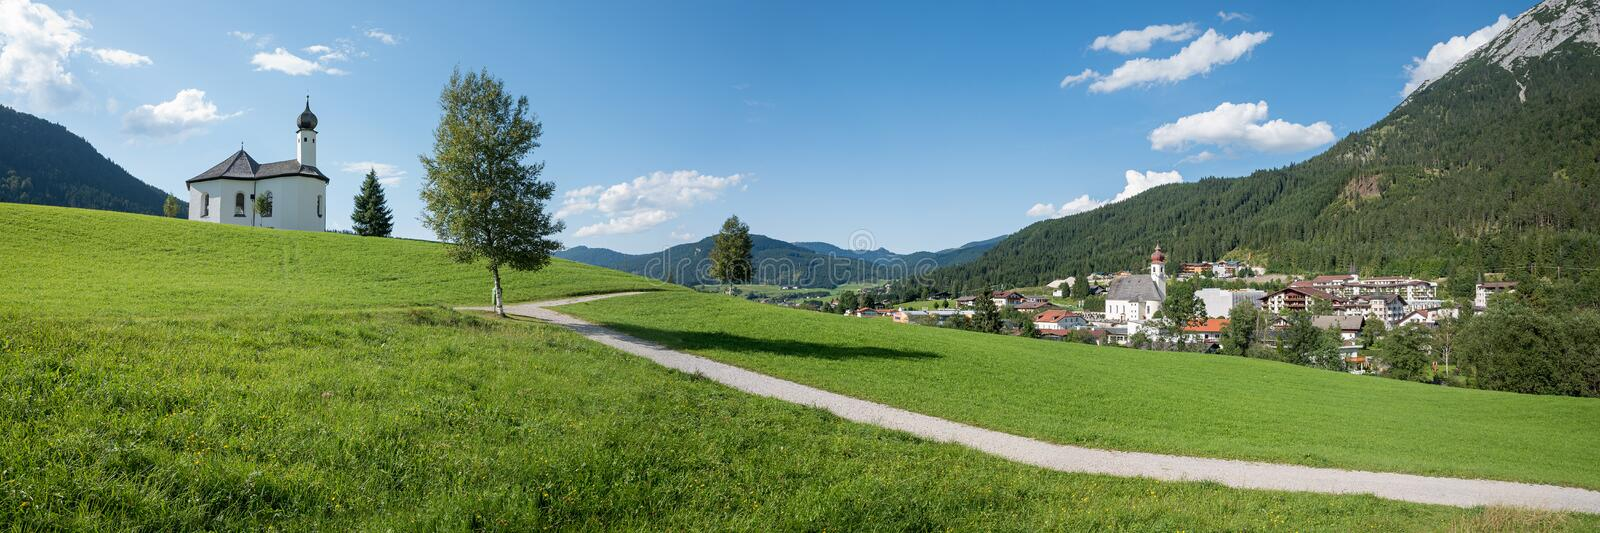 Holiday place achenkirch, sunny summer landscape austria. Panoramic view to beautiful holiday place achenkirch, sunny summer landscape austria with village and stock images